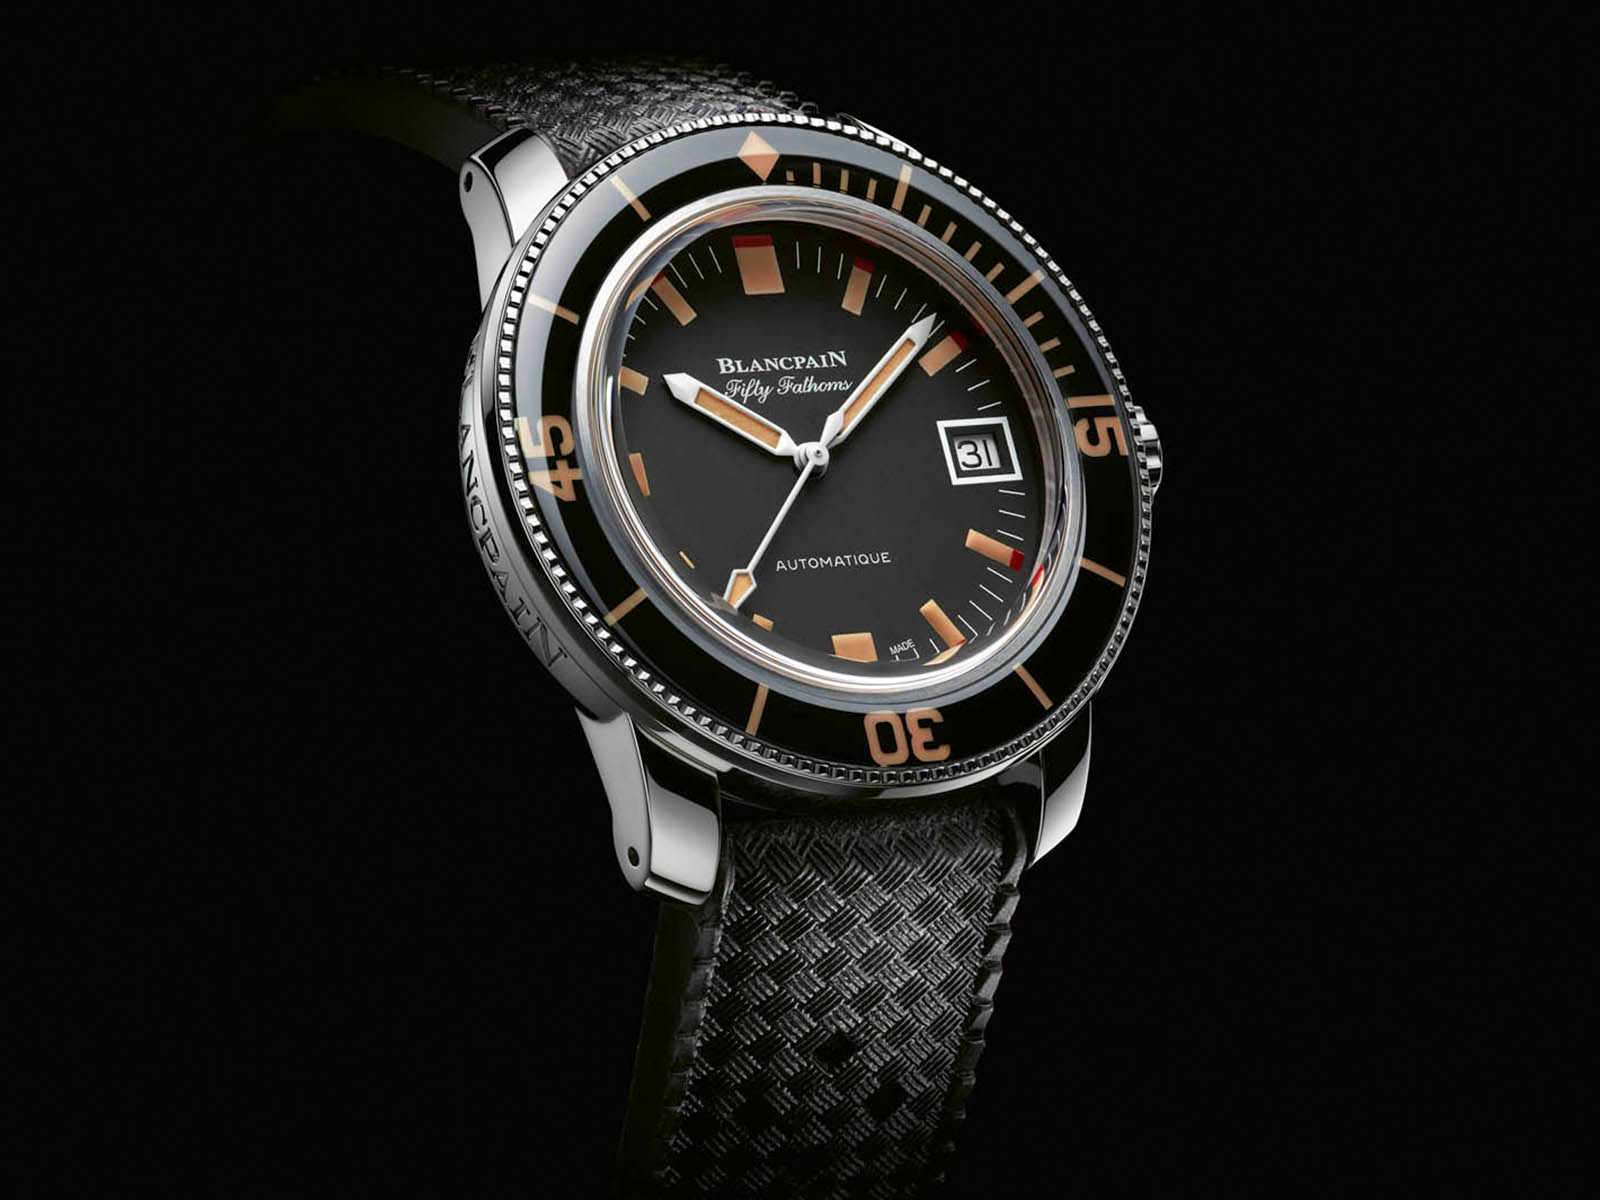 blancpain-fifty-fathoms-barakuda-limited-edition-1.jpg